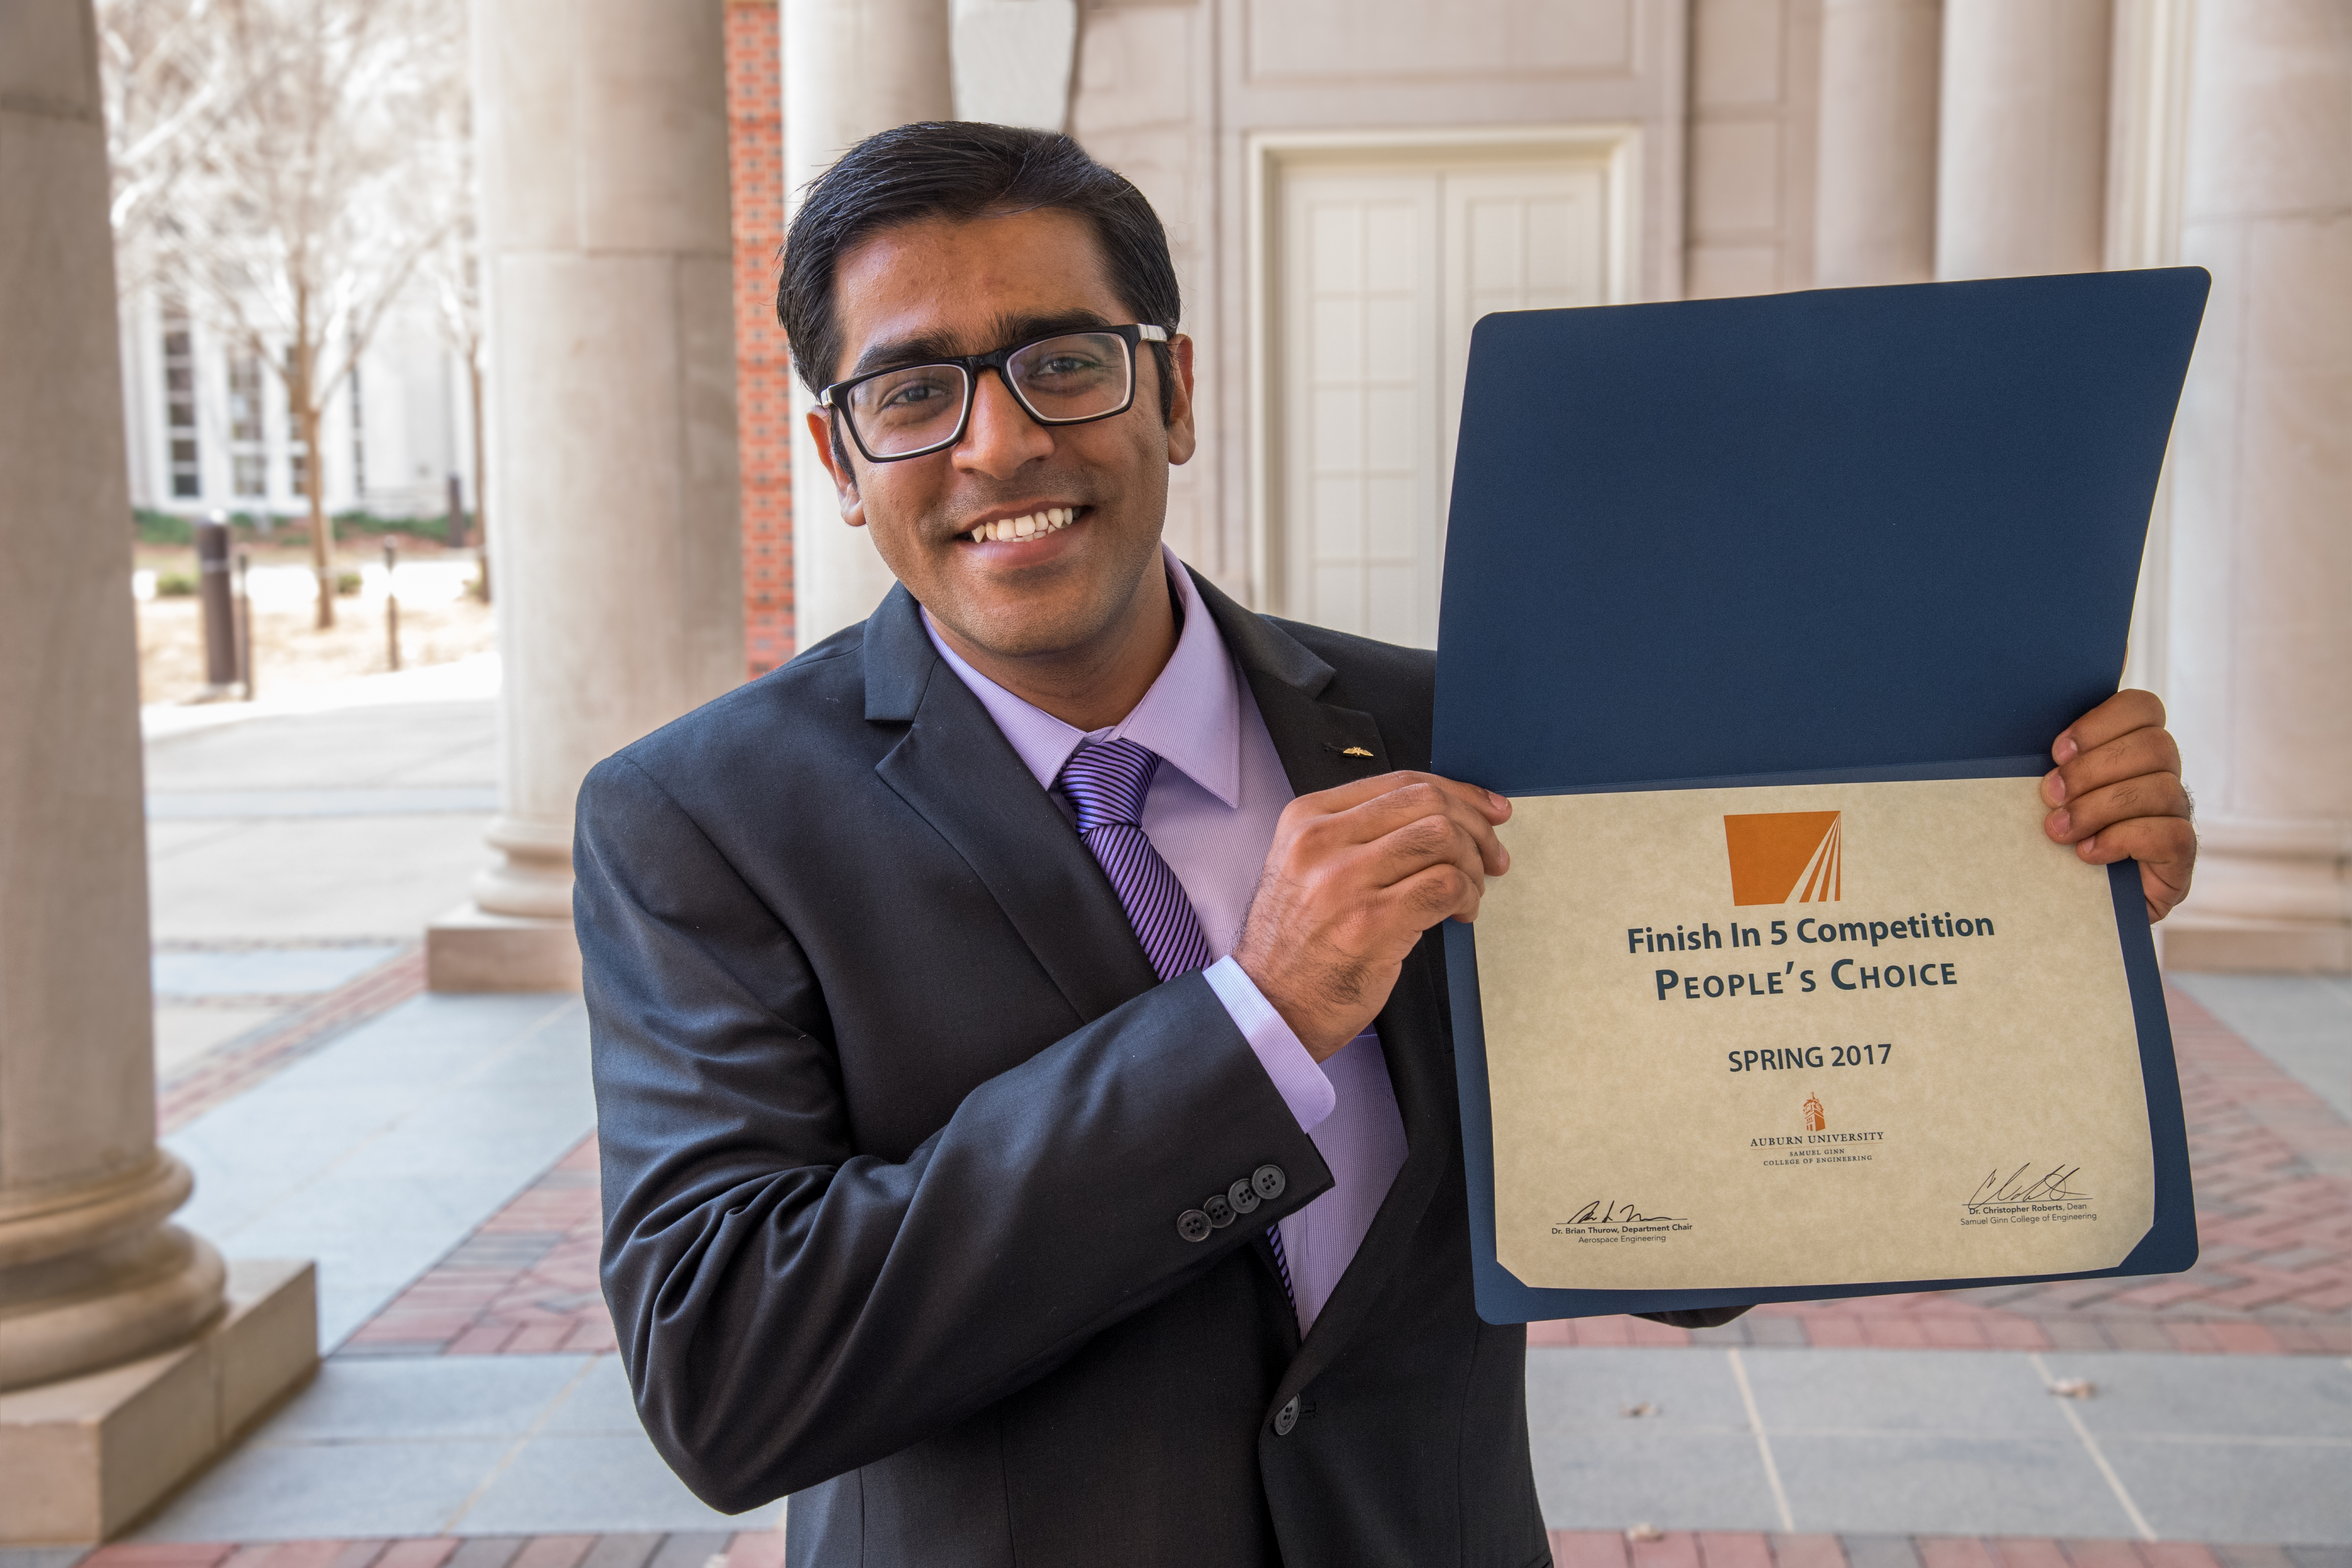 Mehul Barde is shown with his award certificate.